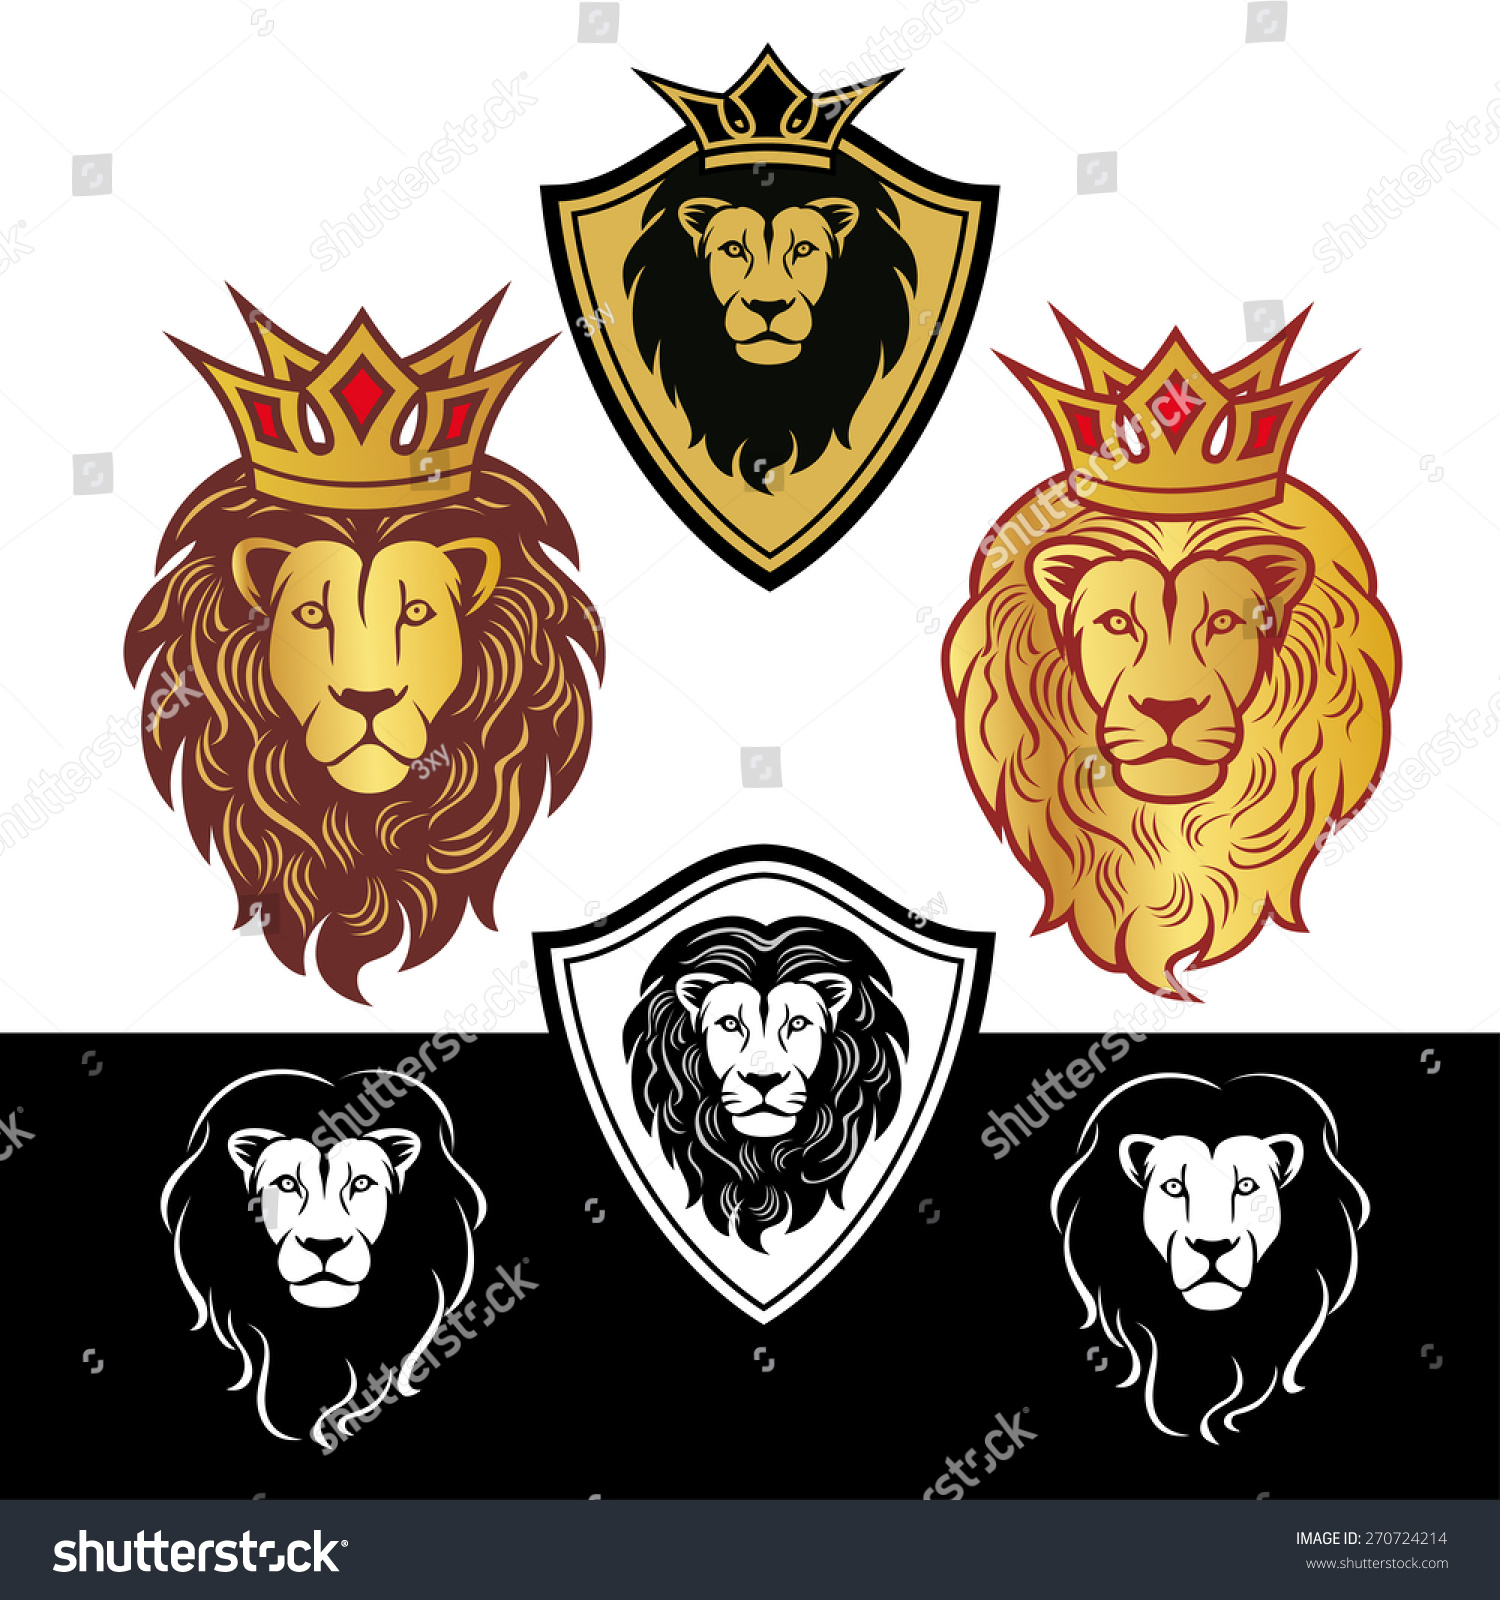 Lion Head In Signs And Labels Stock Photo 270724214. Loans For Those With Poor Credit. Aacsb Accredited Online Mba Photo Book Diy. Heating And Air Greensboro Nc. List Of Medical Billing Software. Resource Allocation Software. How Much Of Your Paycheck Can Be Garnished. Online University Classes Saab Repair Seattle. Tax Resolution Services Co Leaveweb Air Force